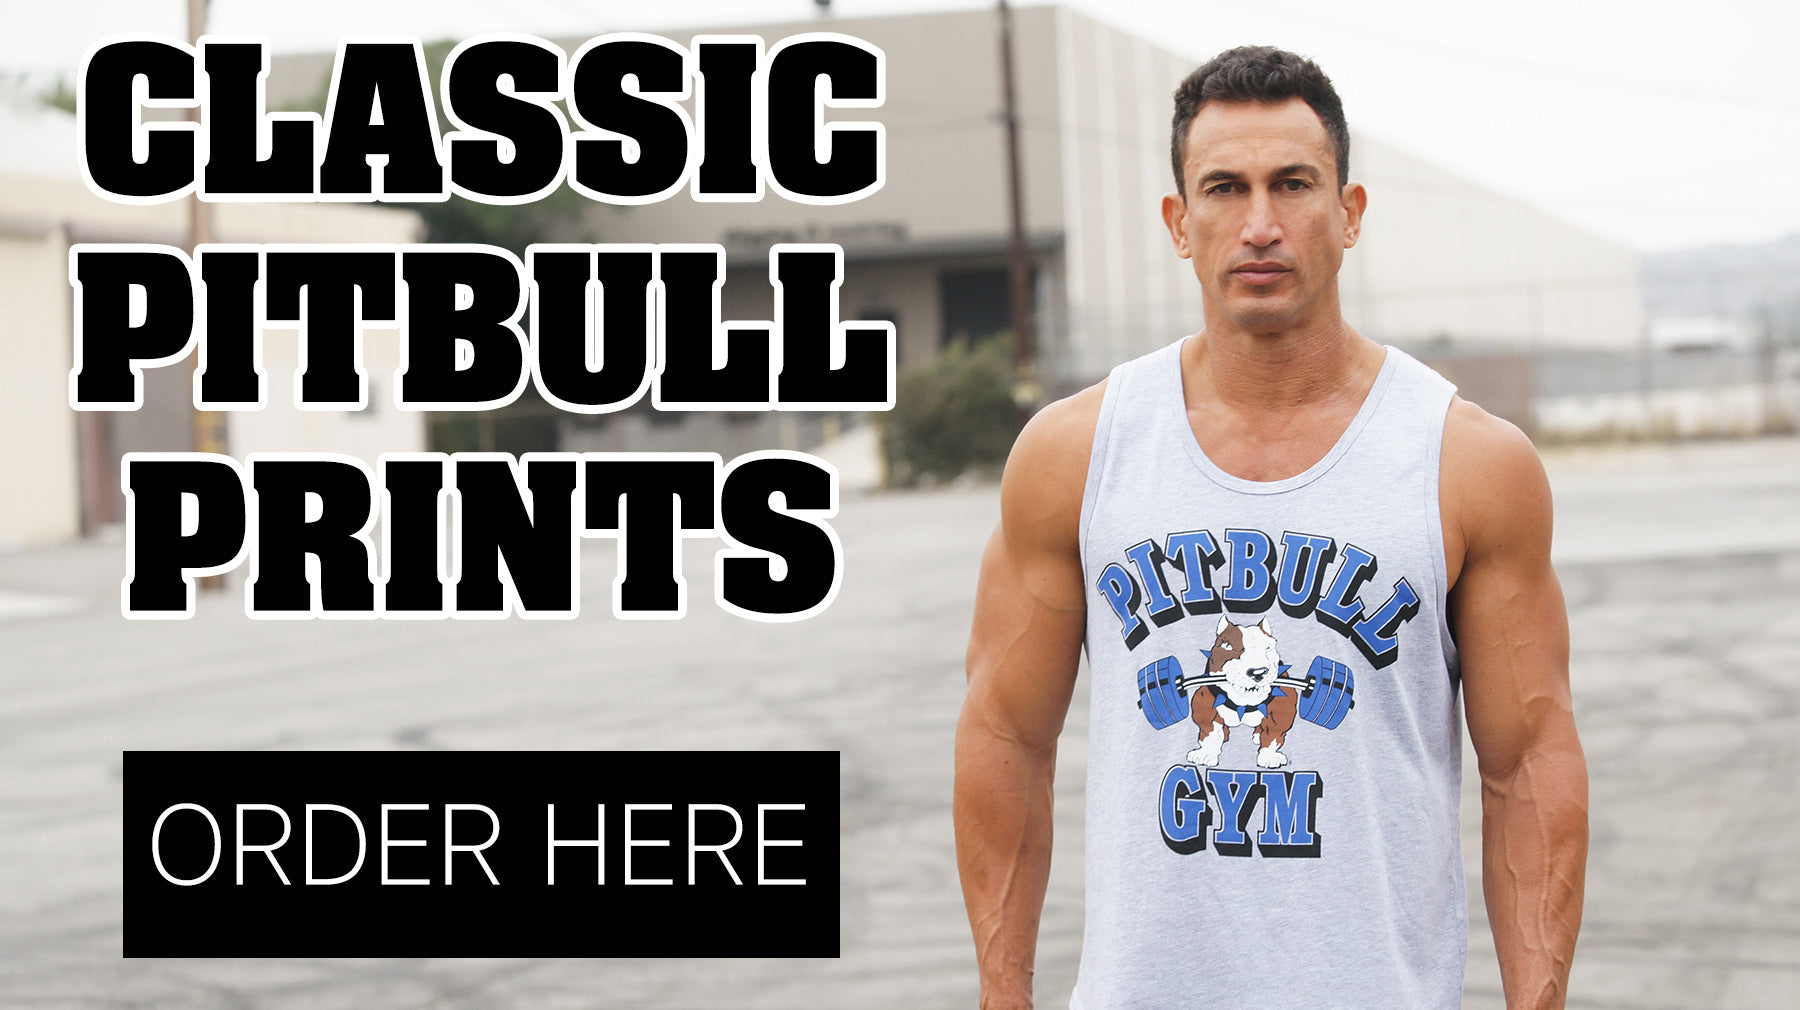 58fa091ff Made in the USA Wholesale Fitness Apparel